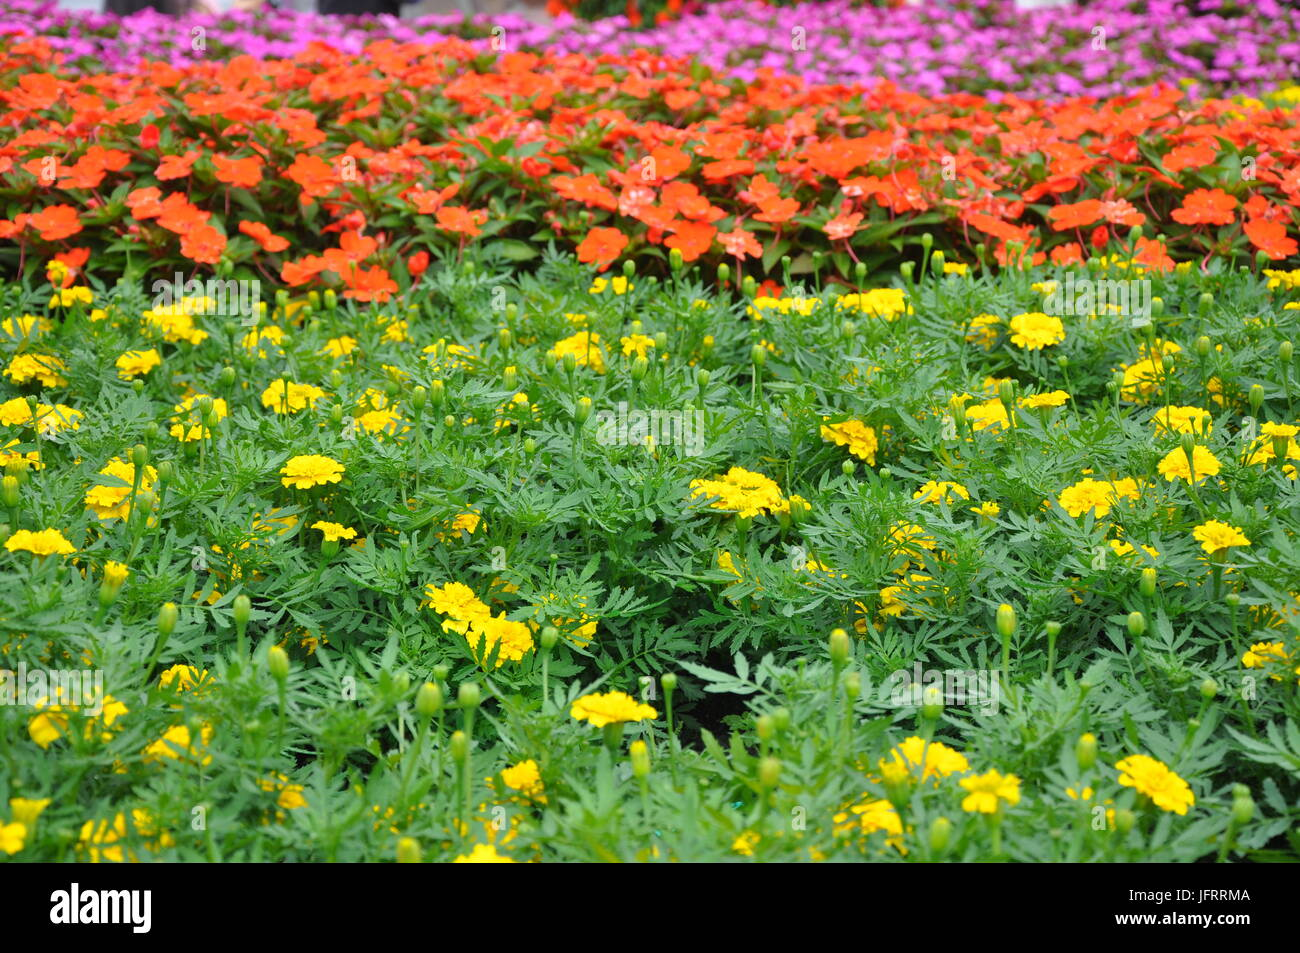 Colorful flower garden as a background, soft image with some flowers in focus - Stock Image